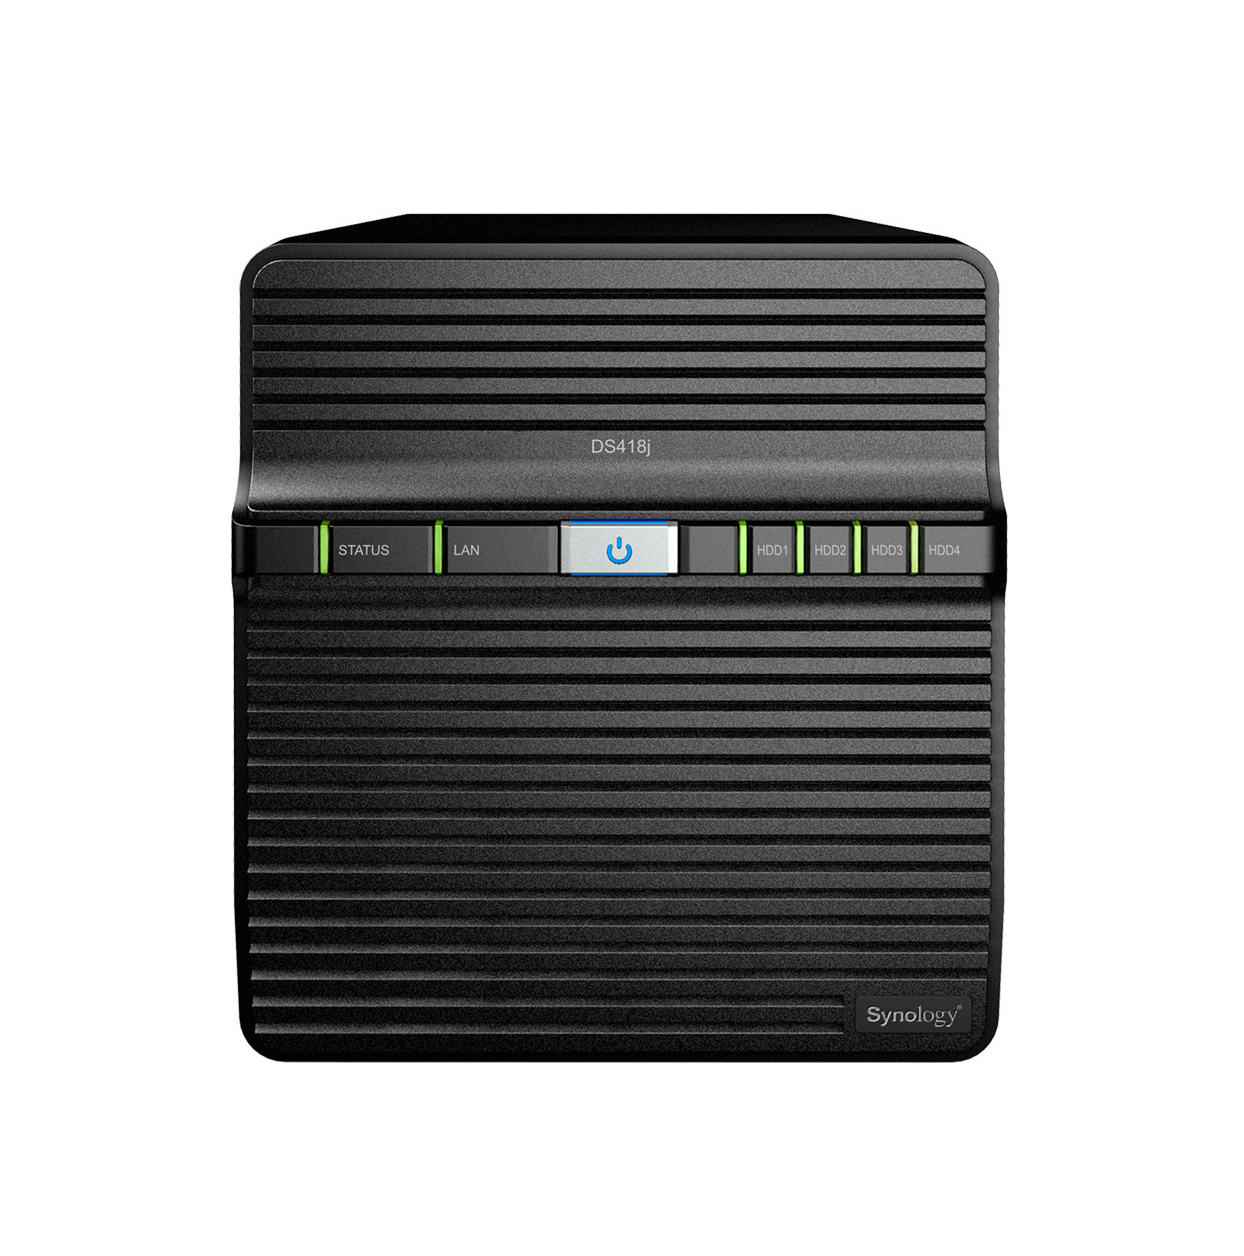 Synology DiskStation DS418J NAS Server Πληρωμή έως 24 δόσεις